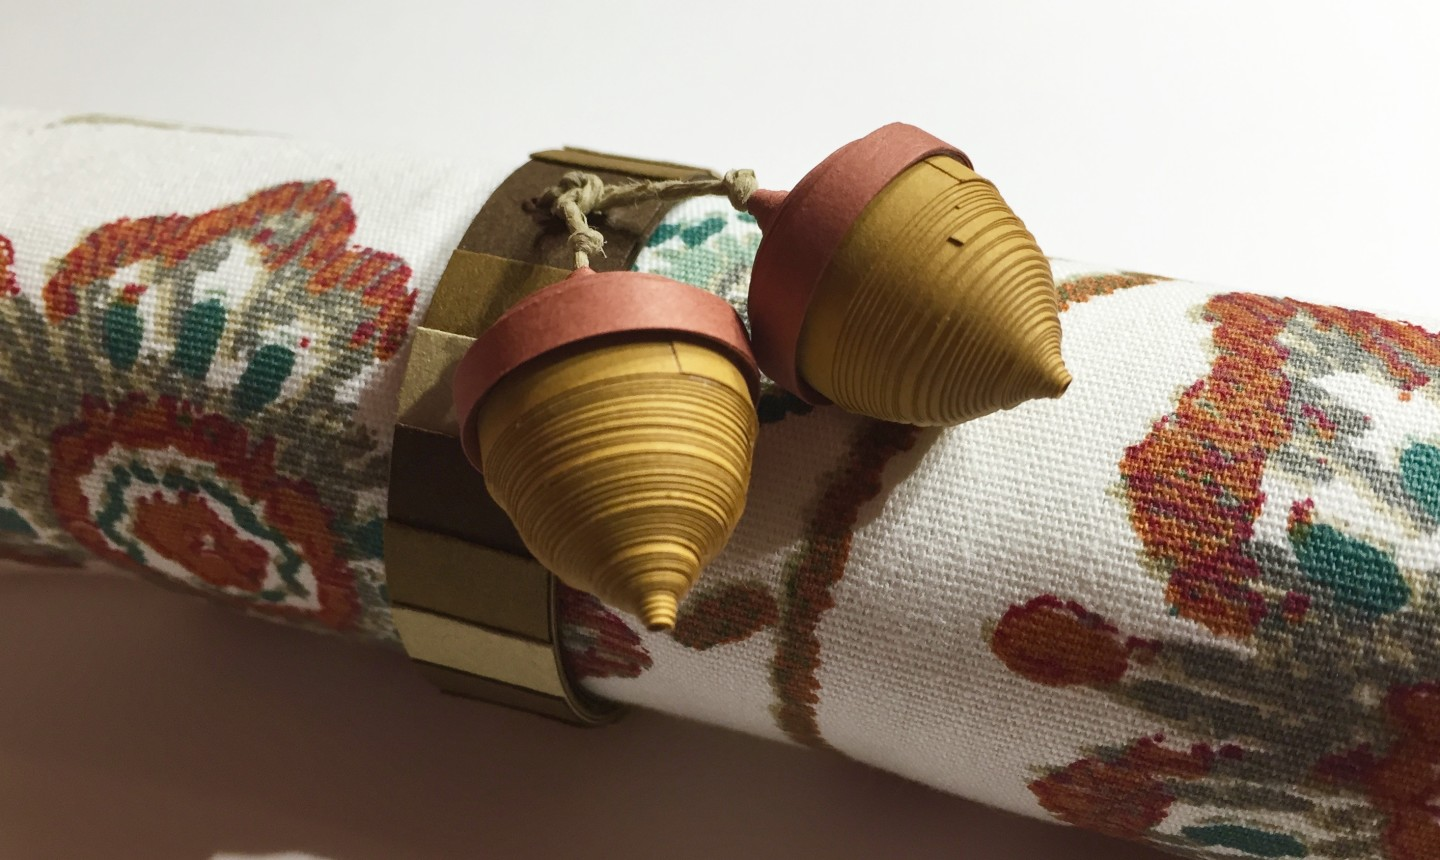 Finished quilled acorn napkin ring